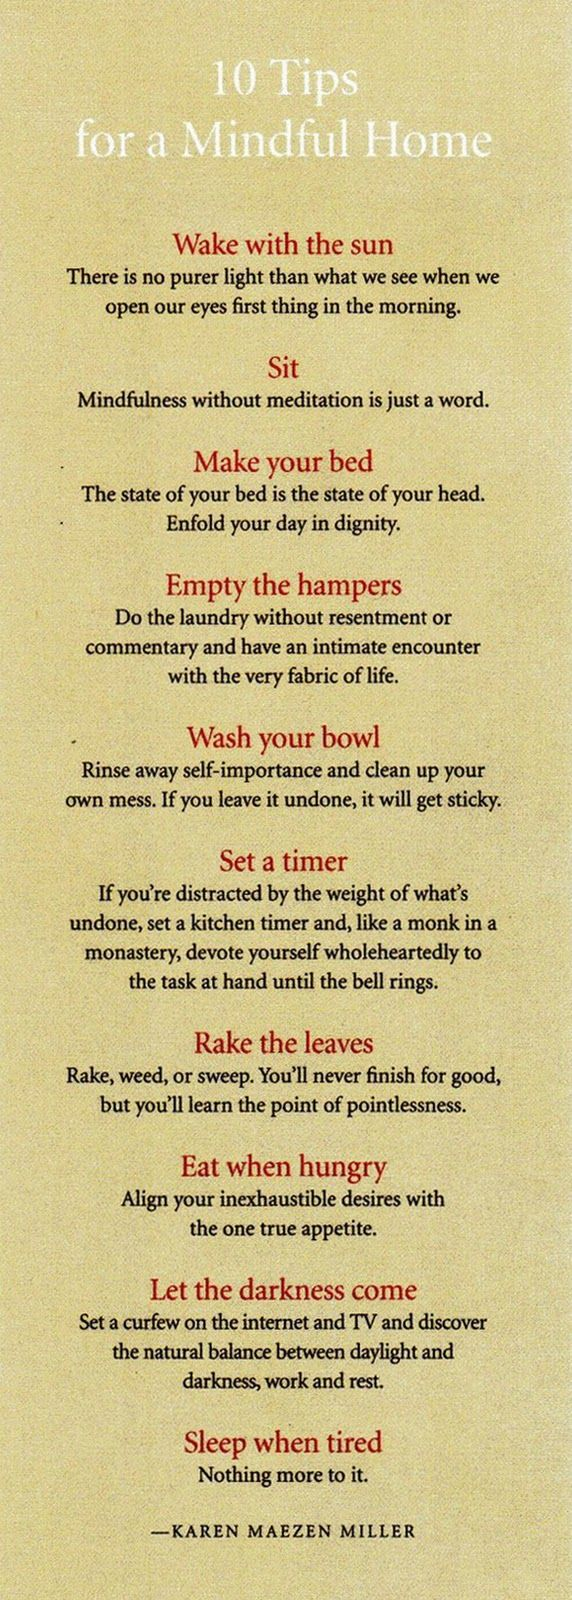 10 tips for a mindful home. My life would certainly